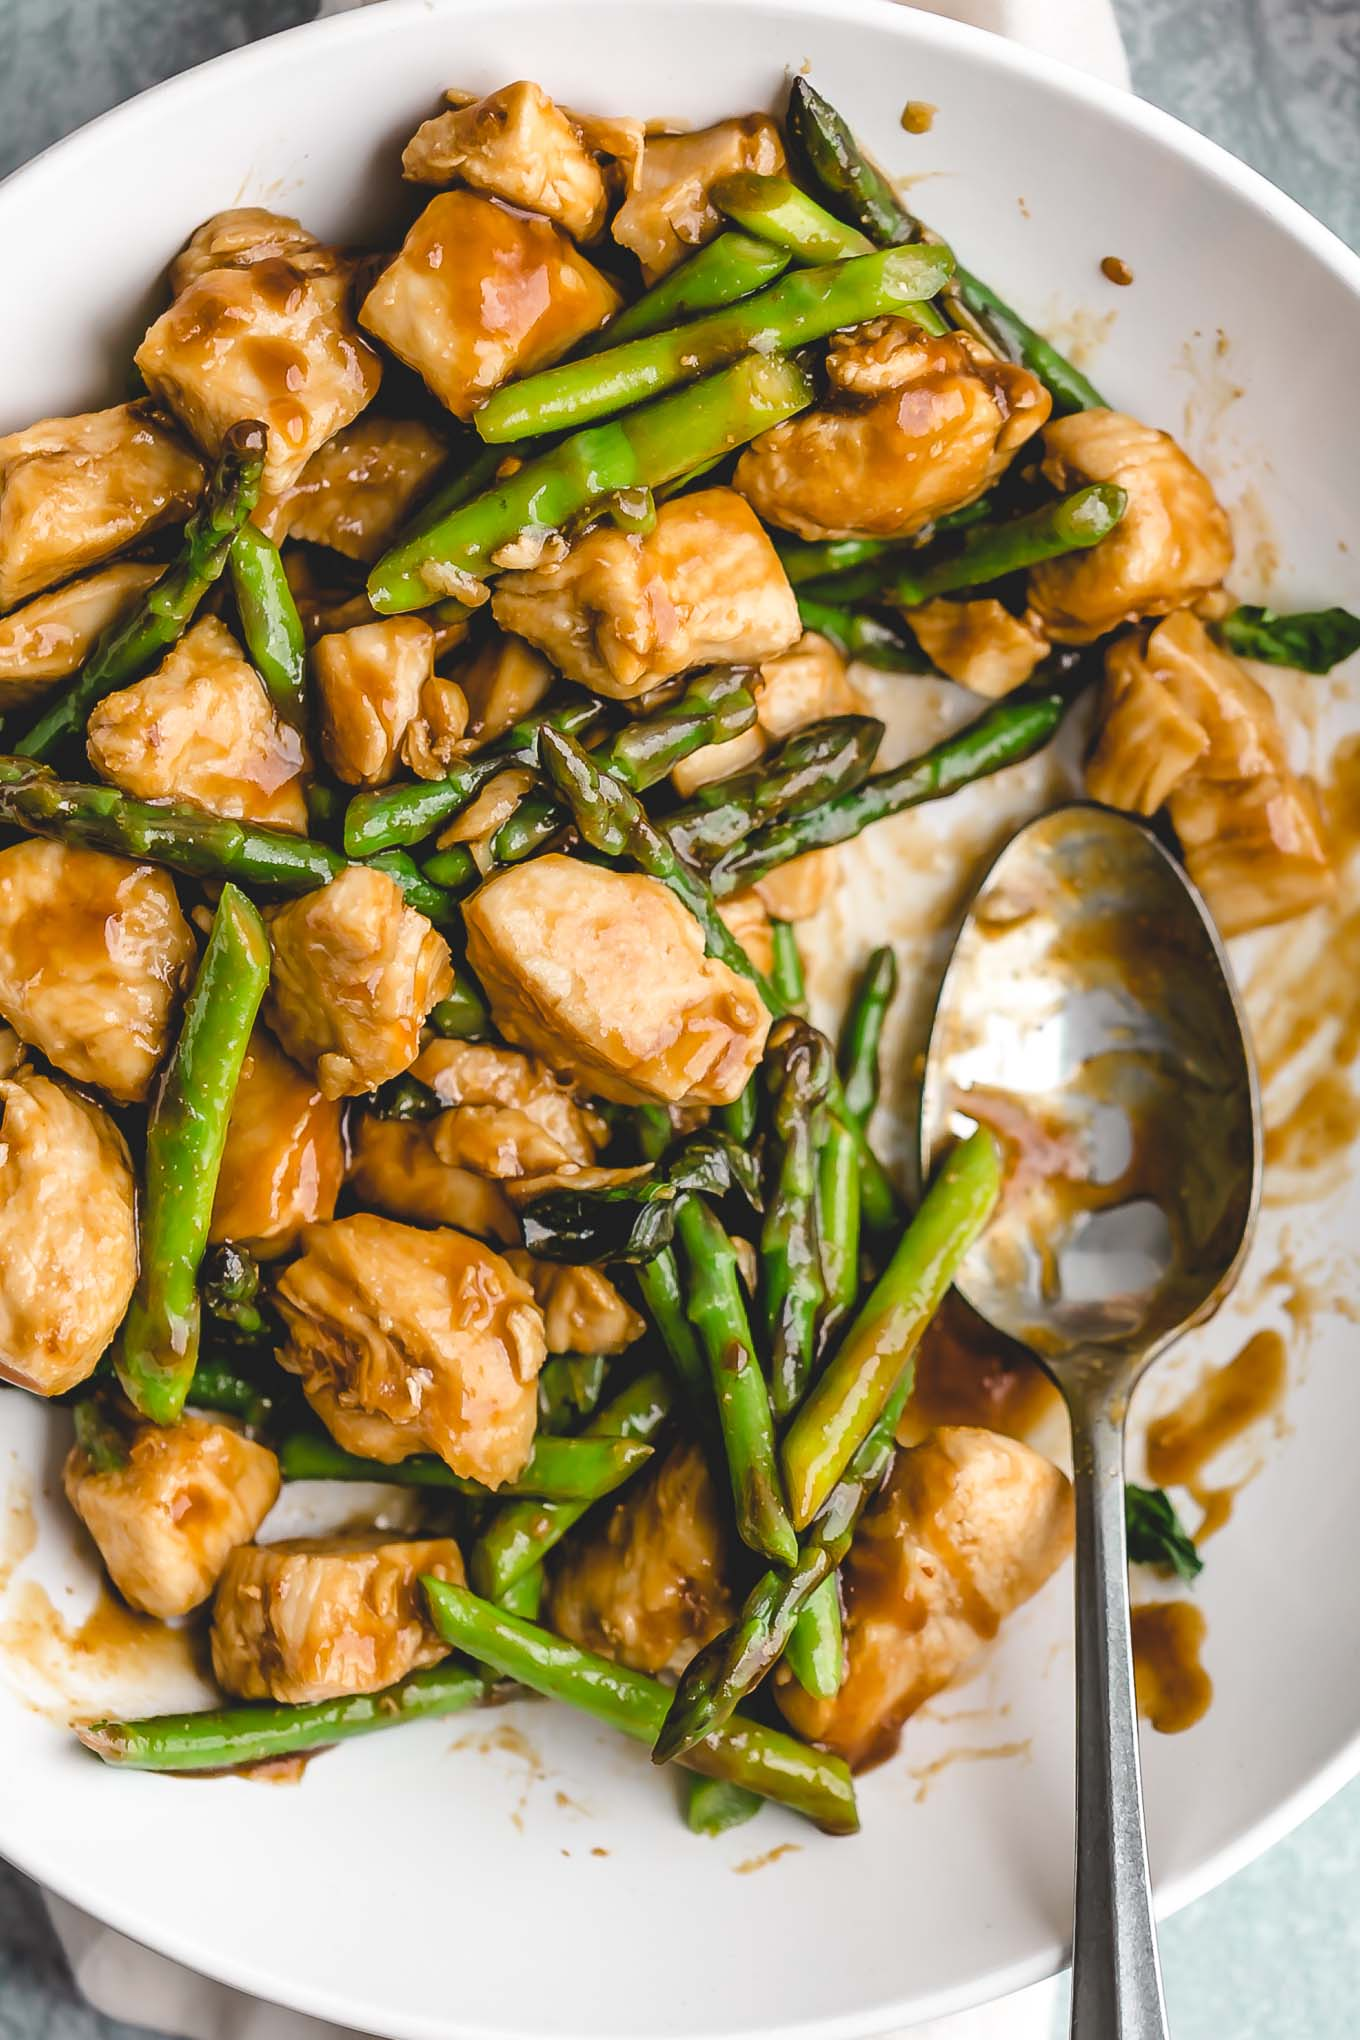 Spicy Basil Chicken Stir Fry (287 calories) - a fragrant and fresh Asian stir fry recipe that's ready in 20 minutes!